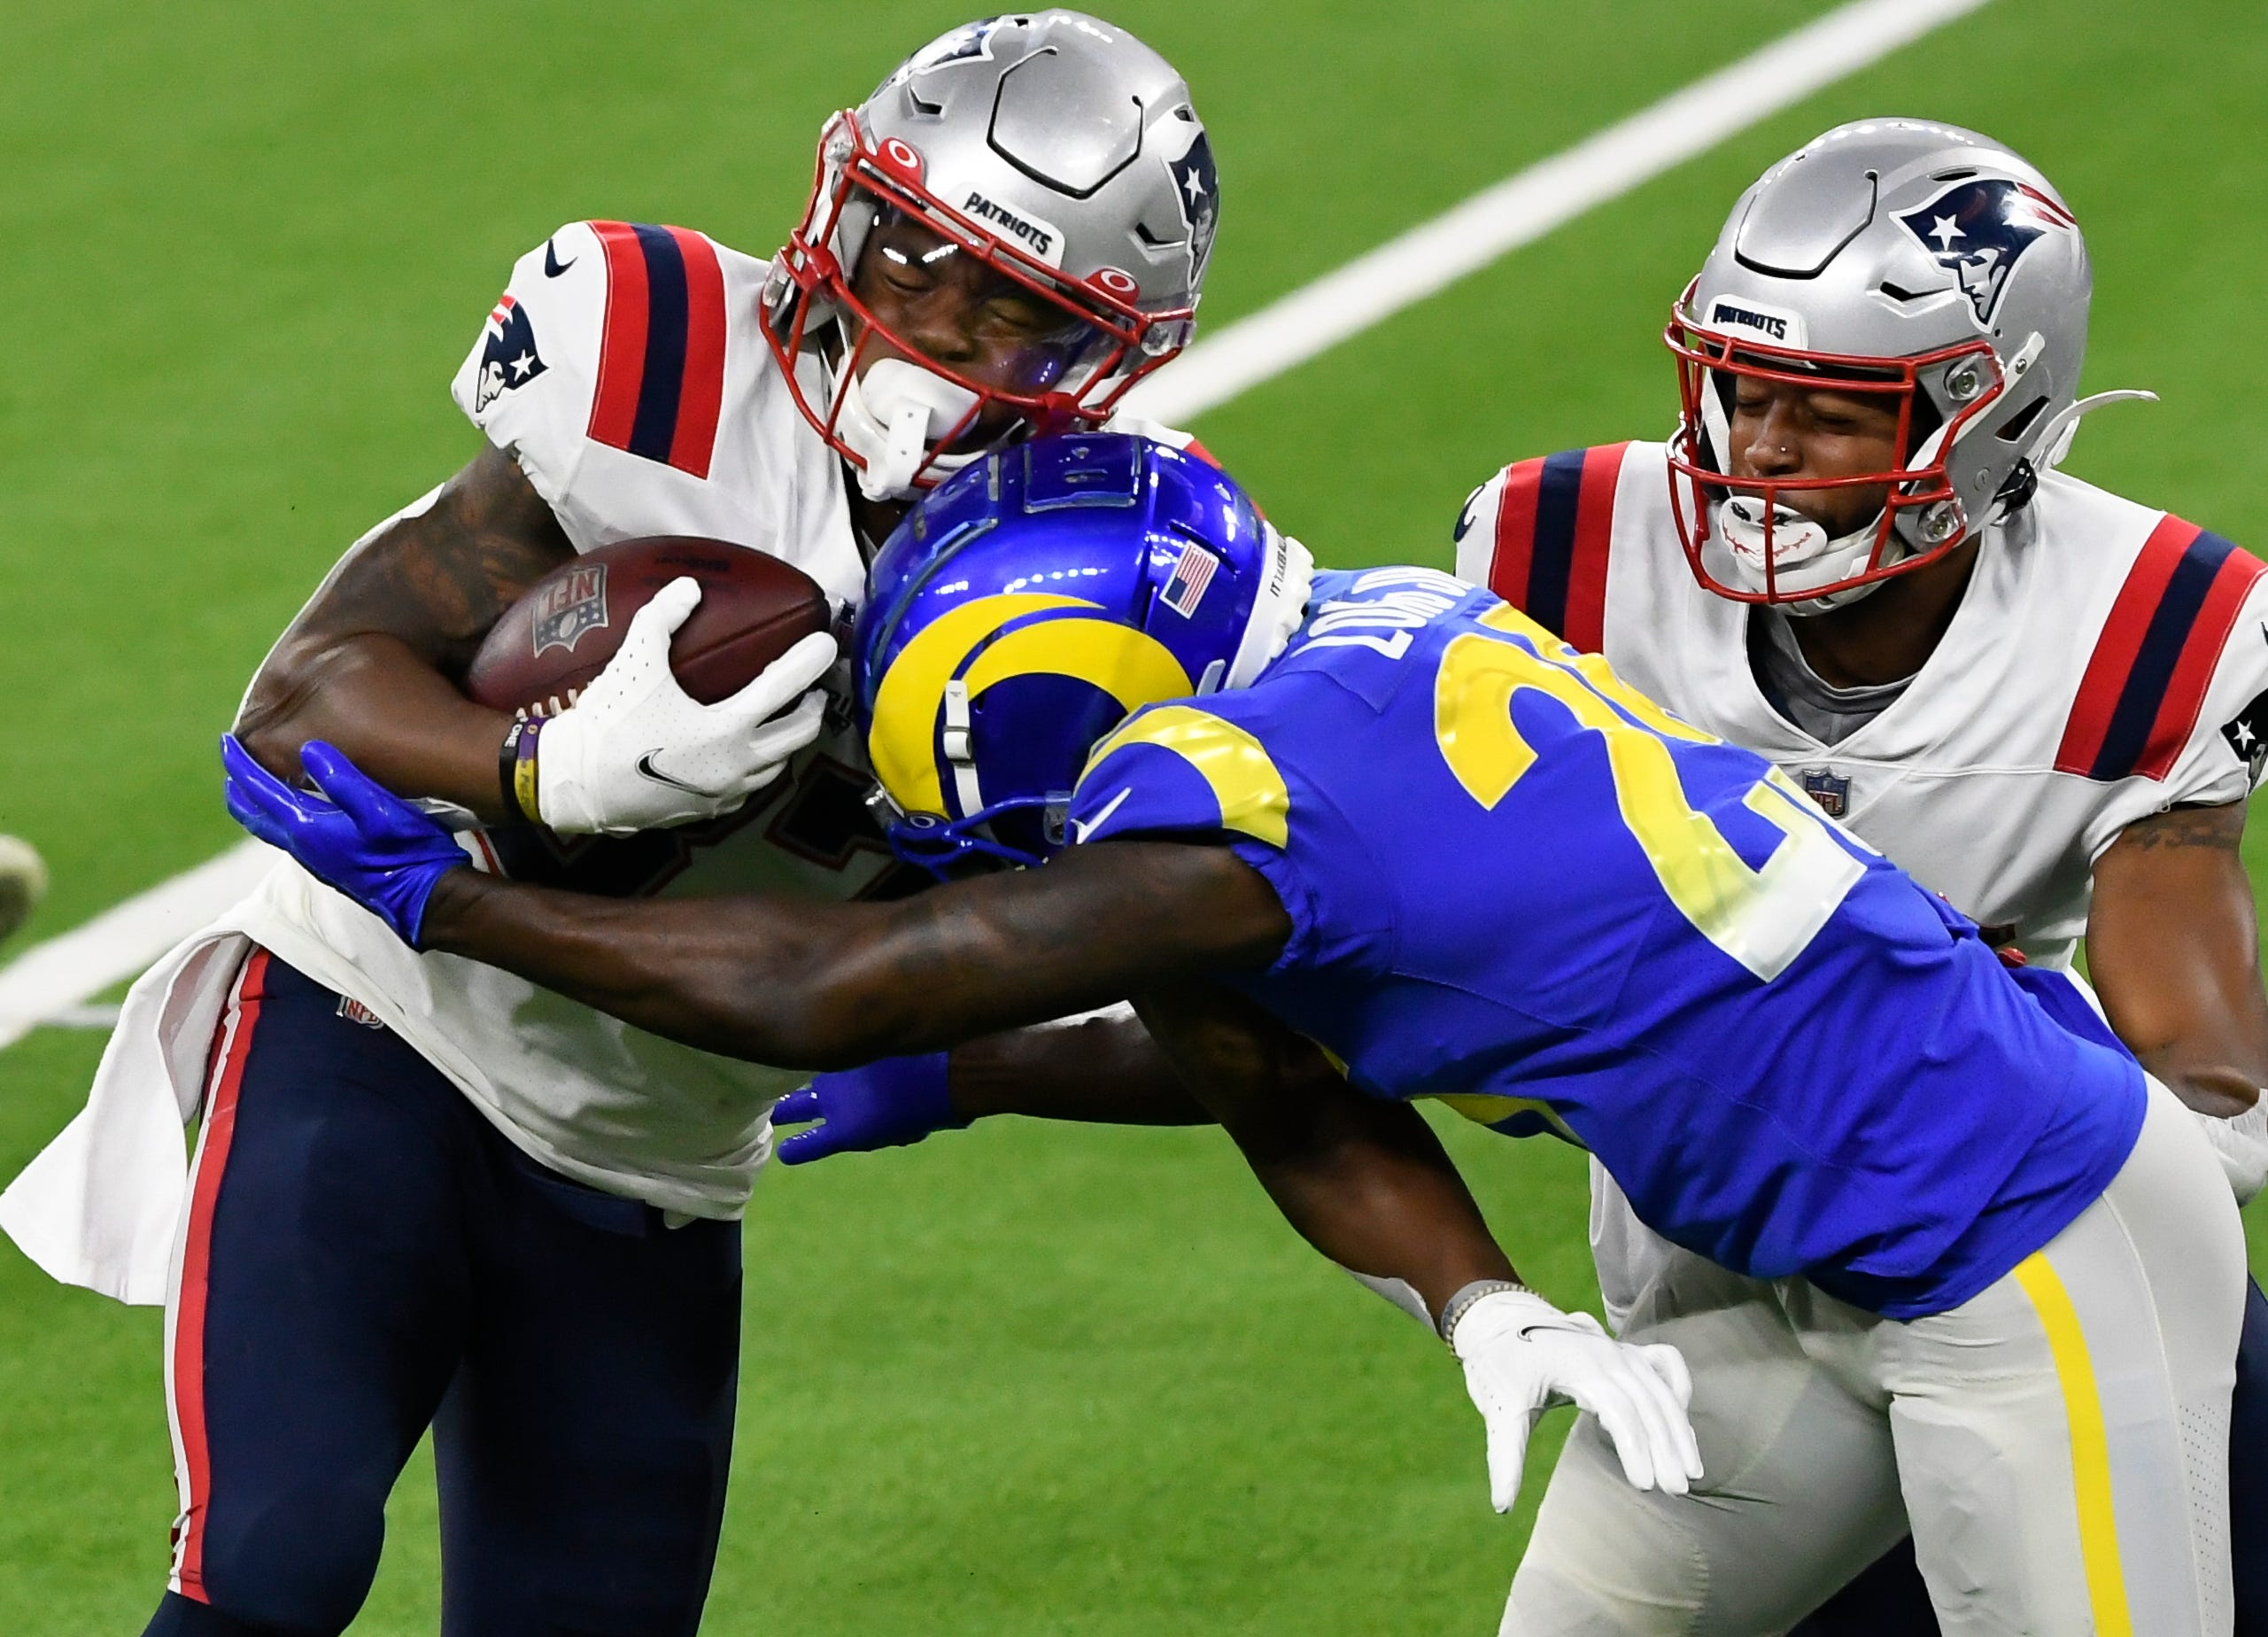 New England Patriots' offense fizzles as Los Angeles Rams get lopsided 'Thursday Night Football' win